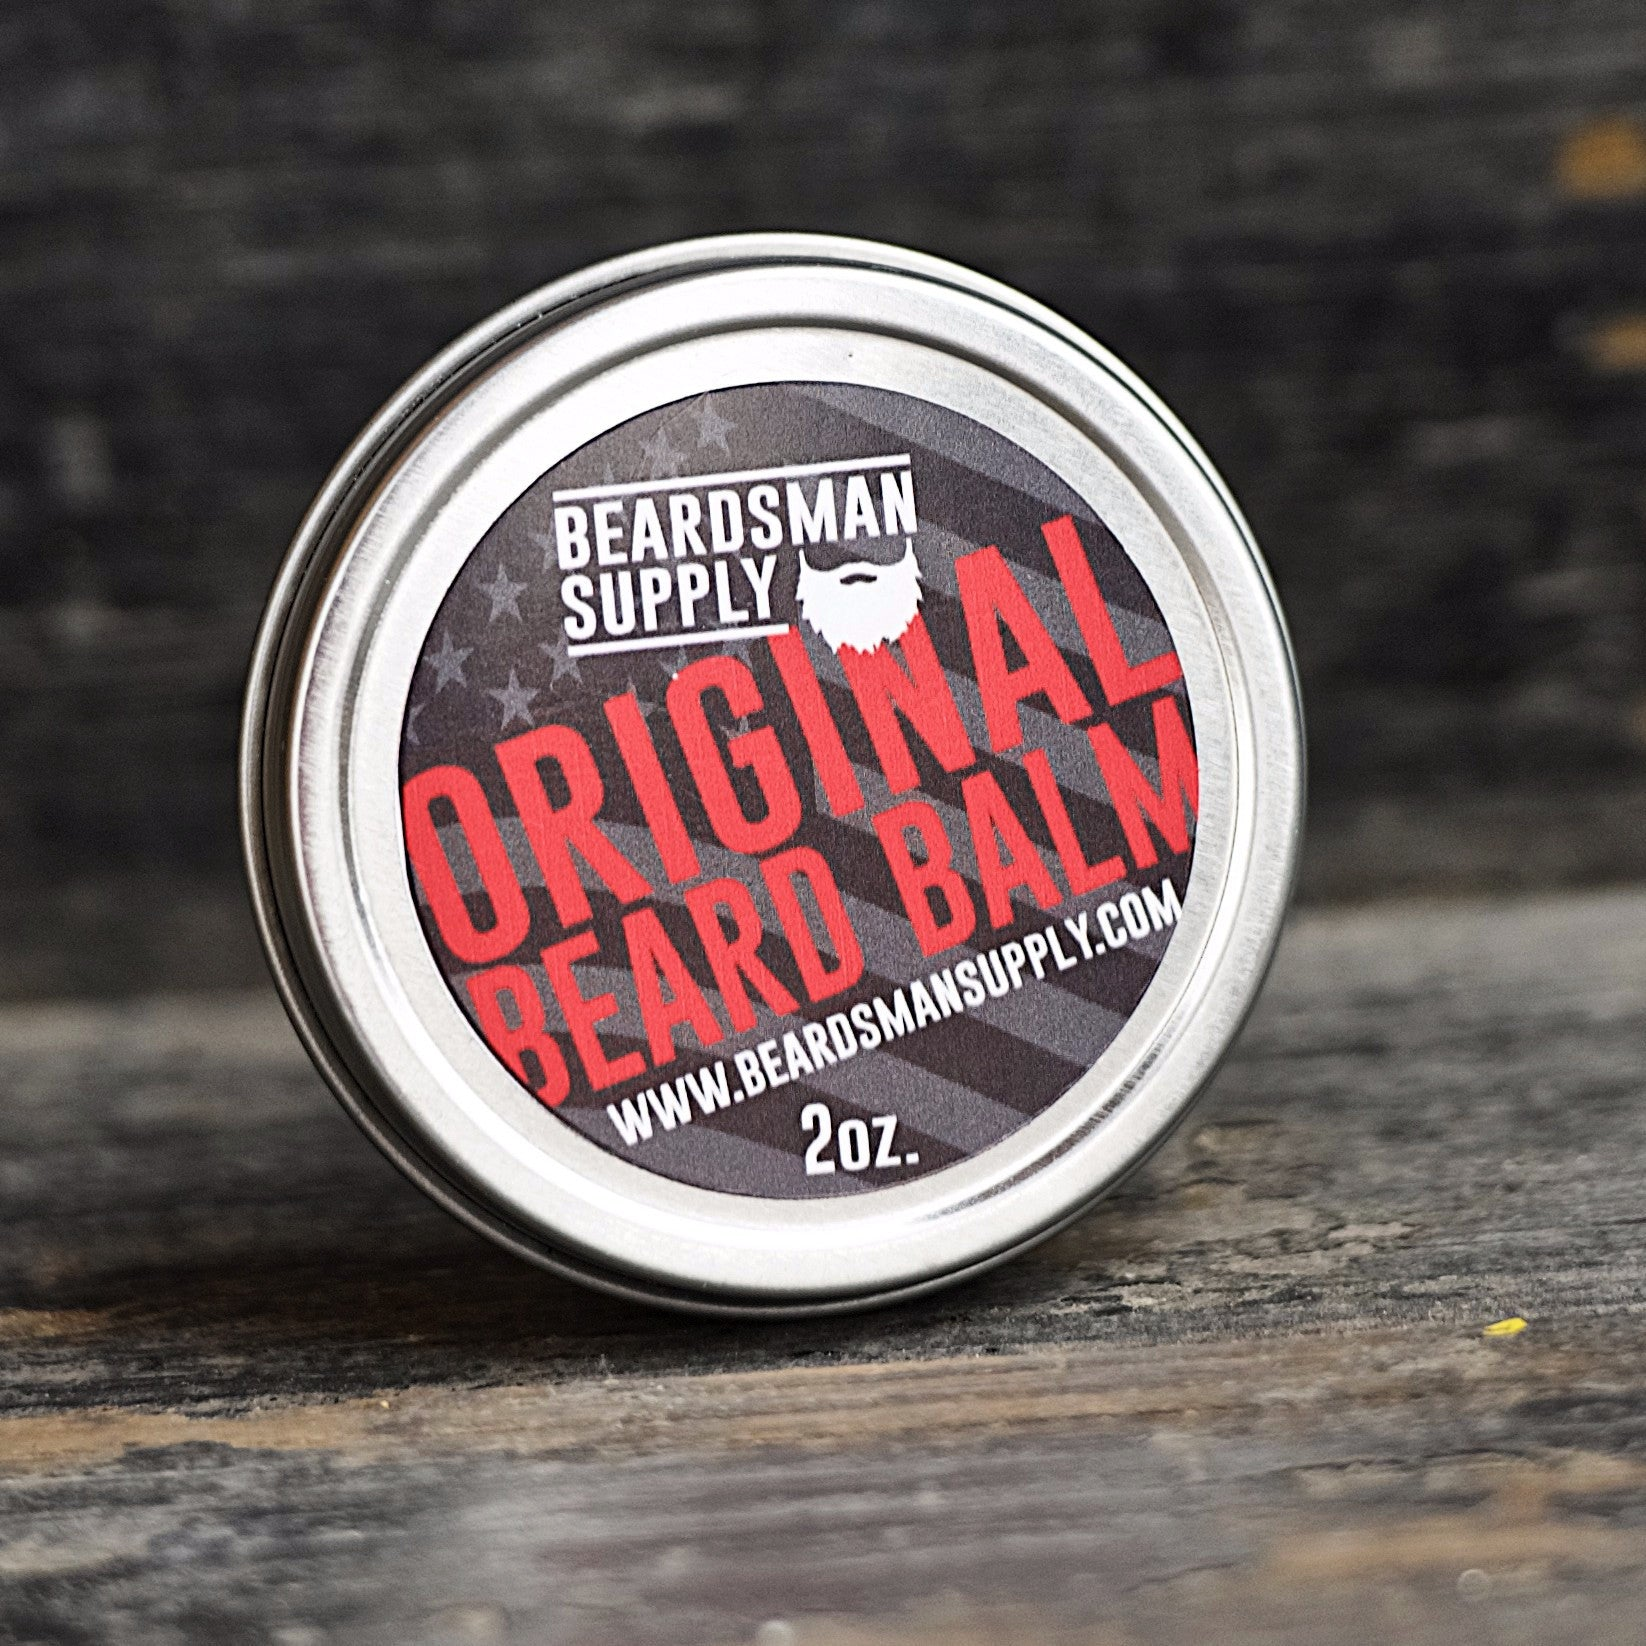 Original Beard Balm - Beardsman Supply, LLC